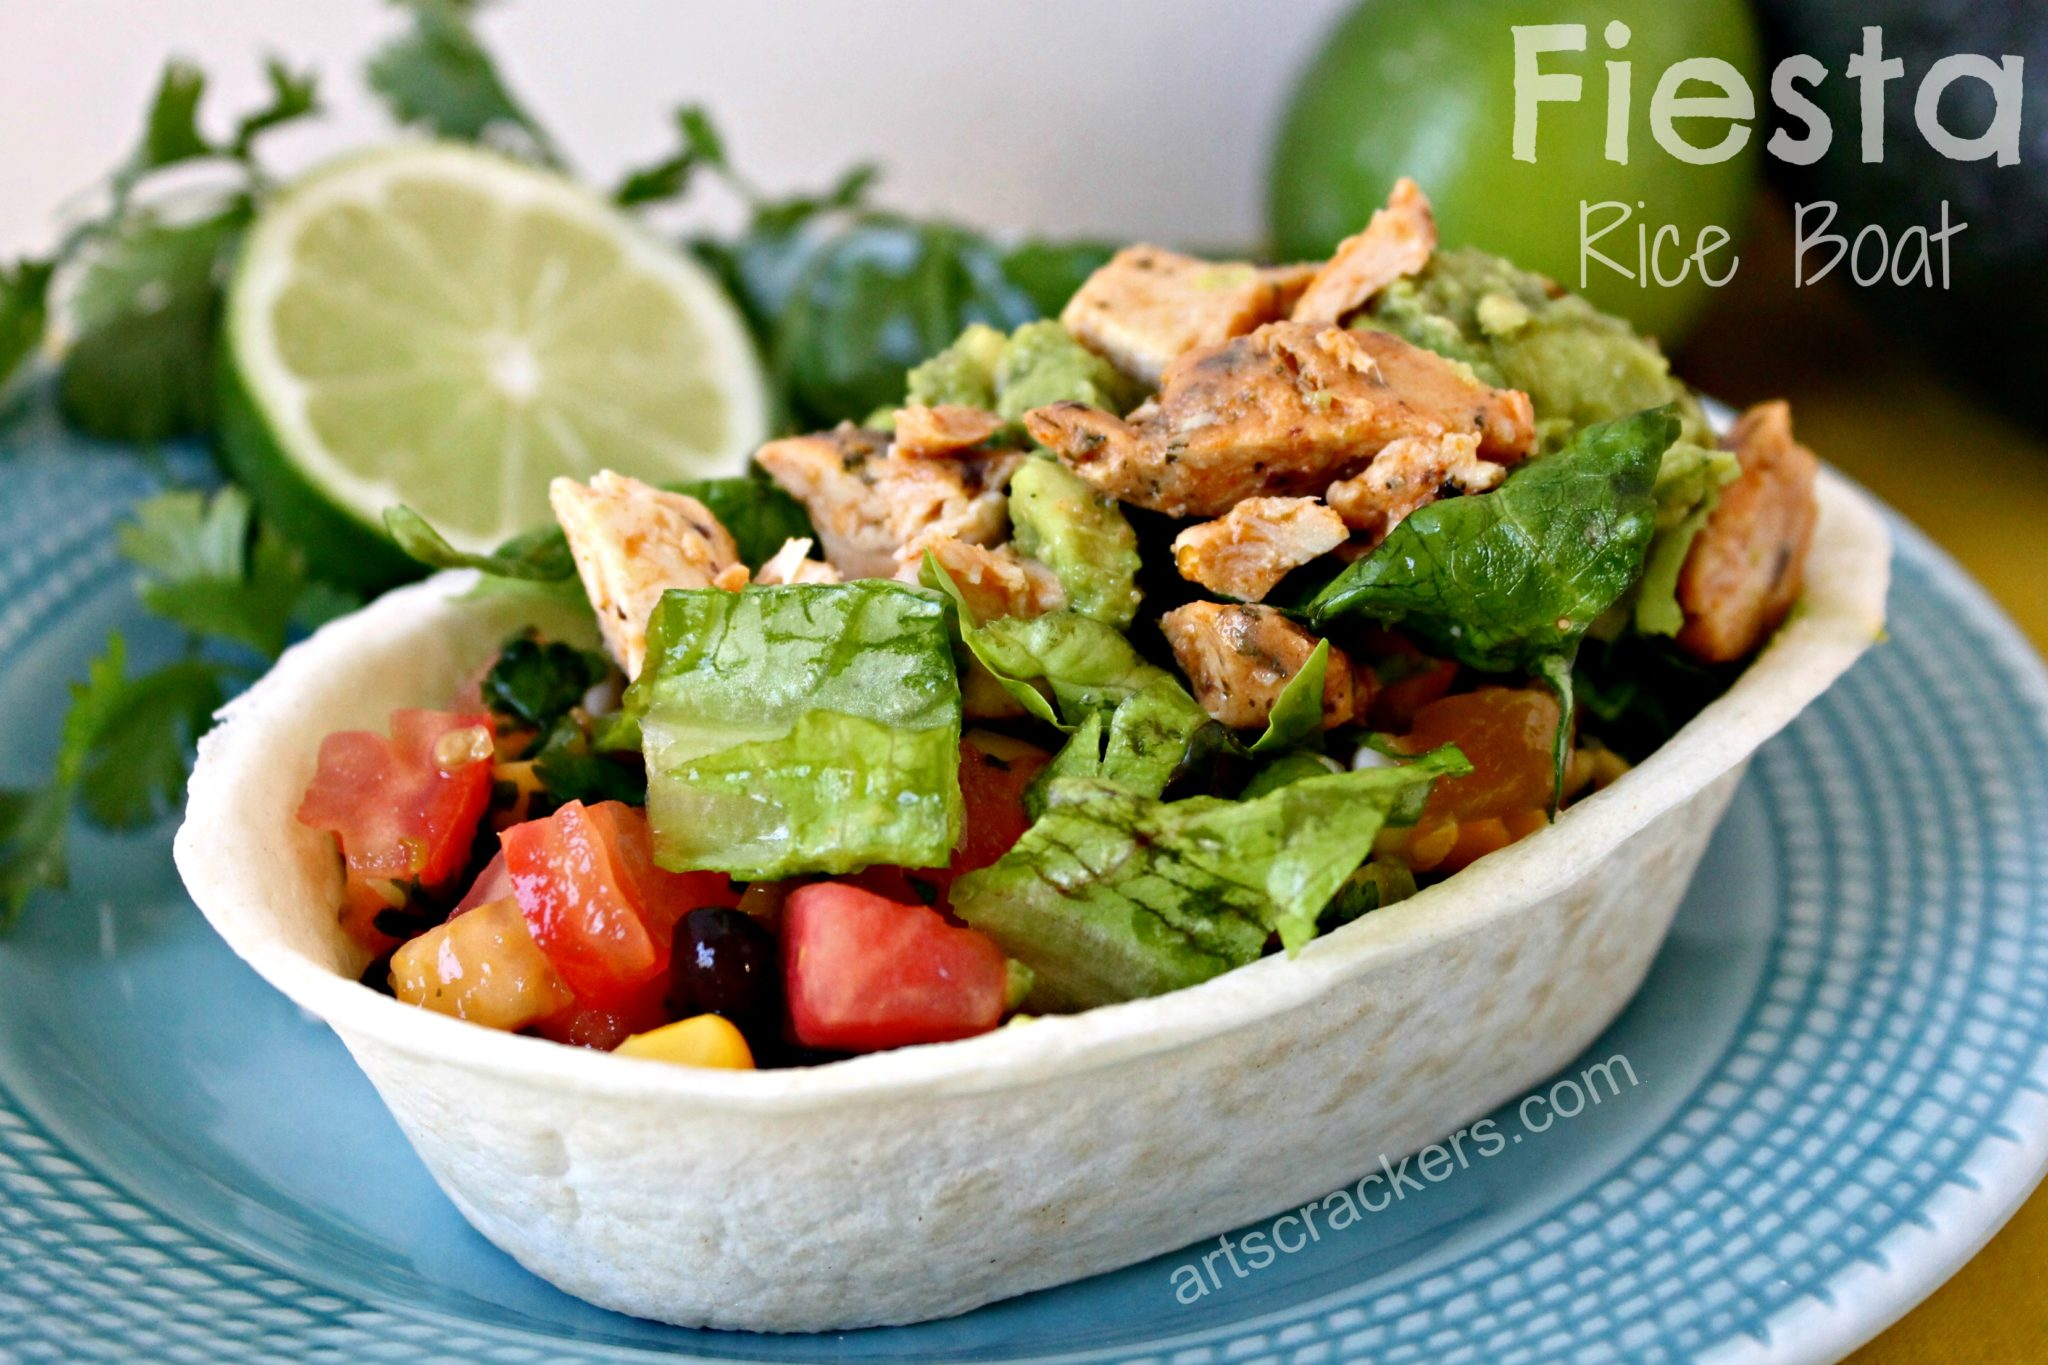 Fiesta Rice Boat. Click the picture to get the recipe.